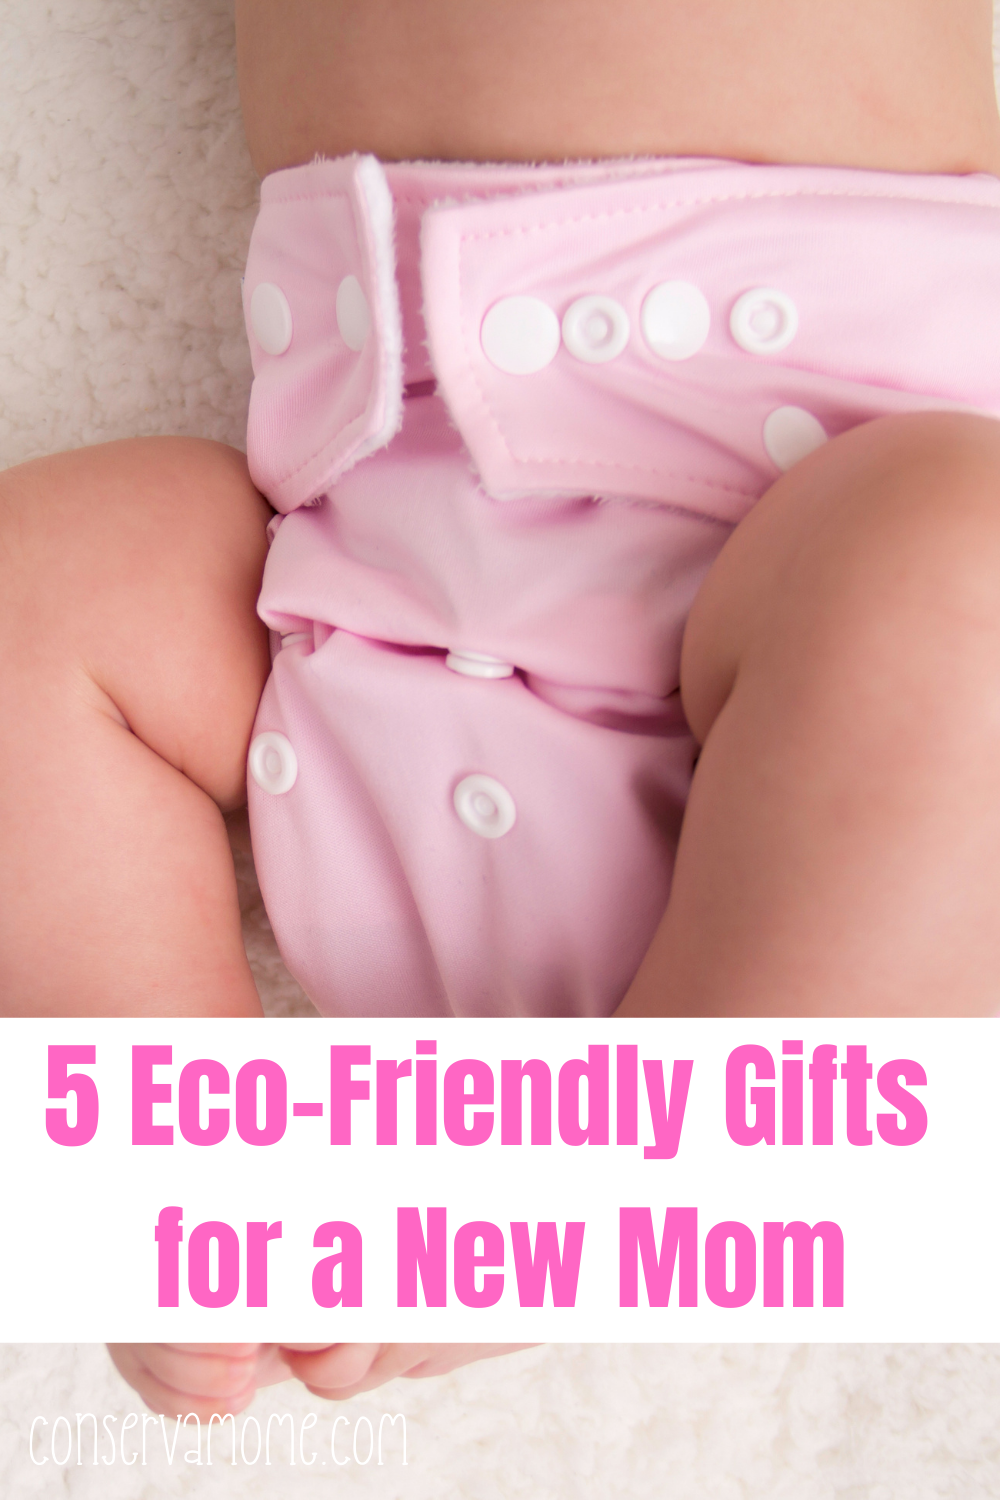 5 Eco-friendly gifts for a new mom